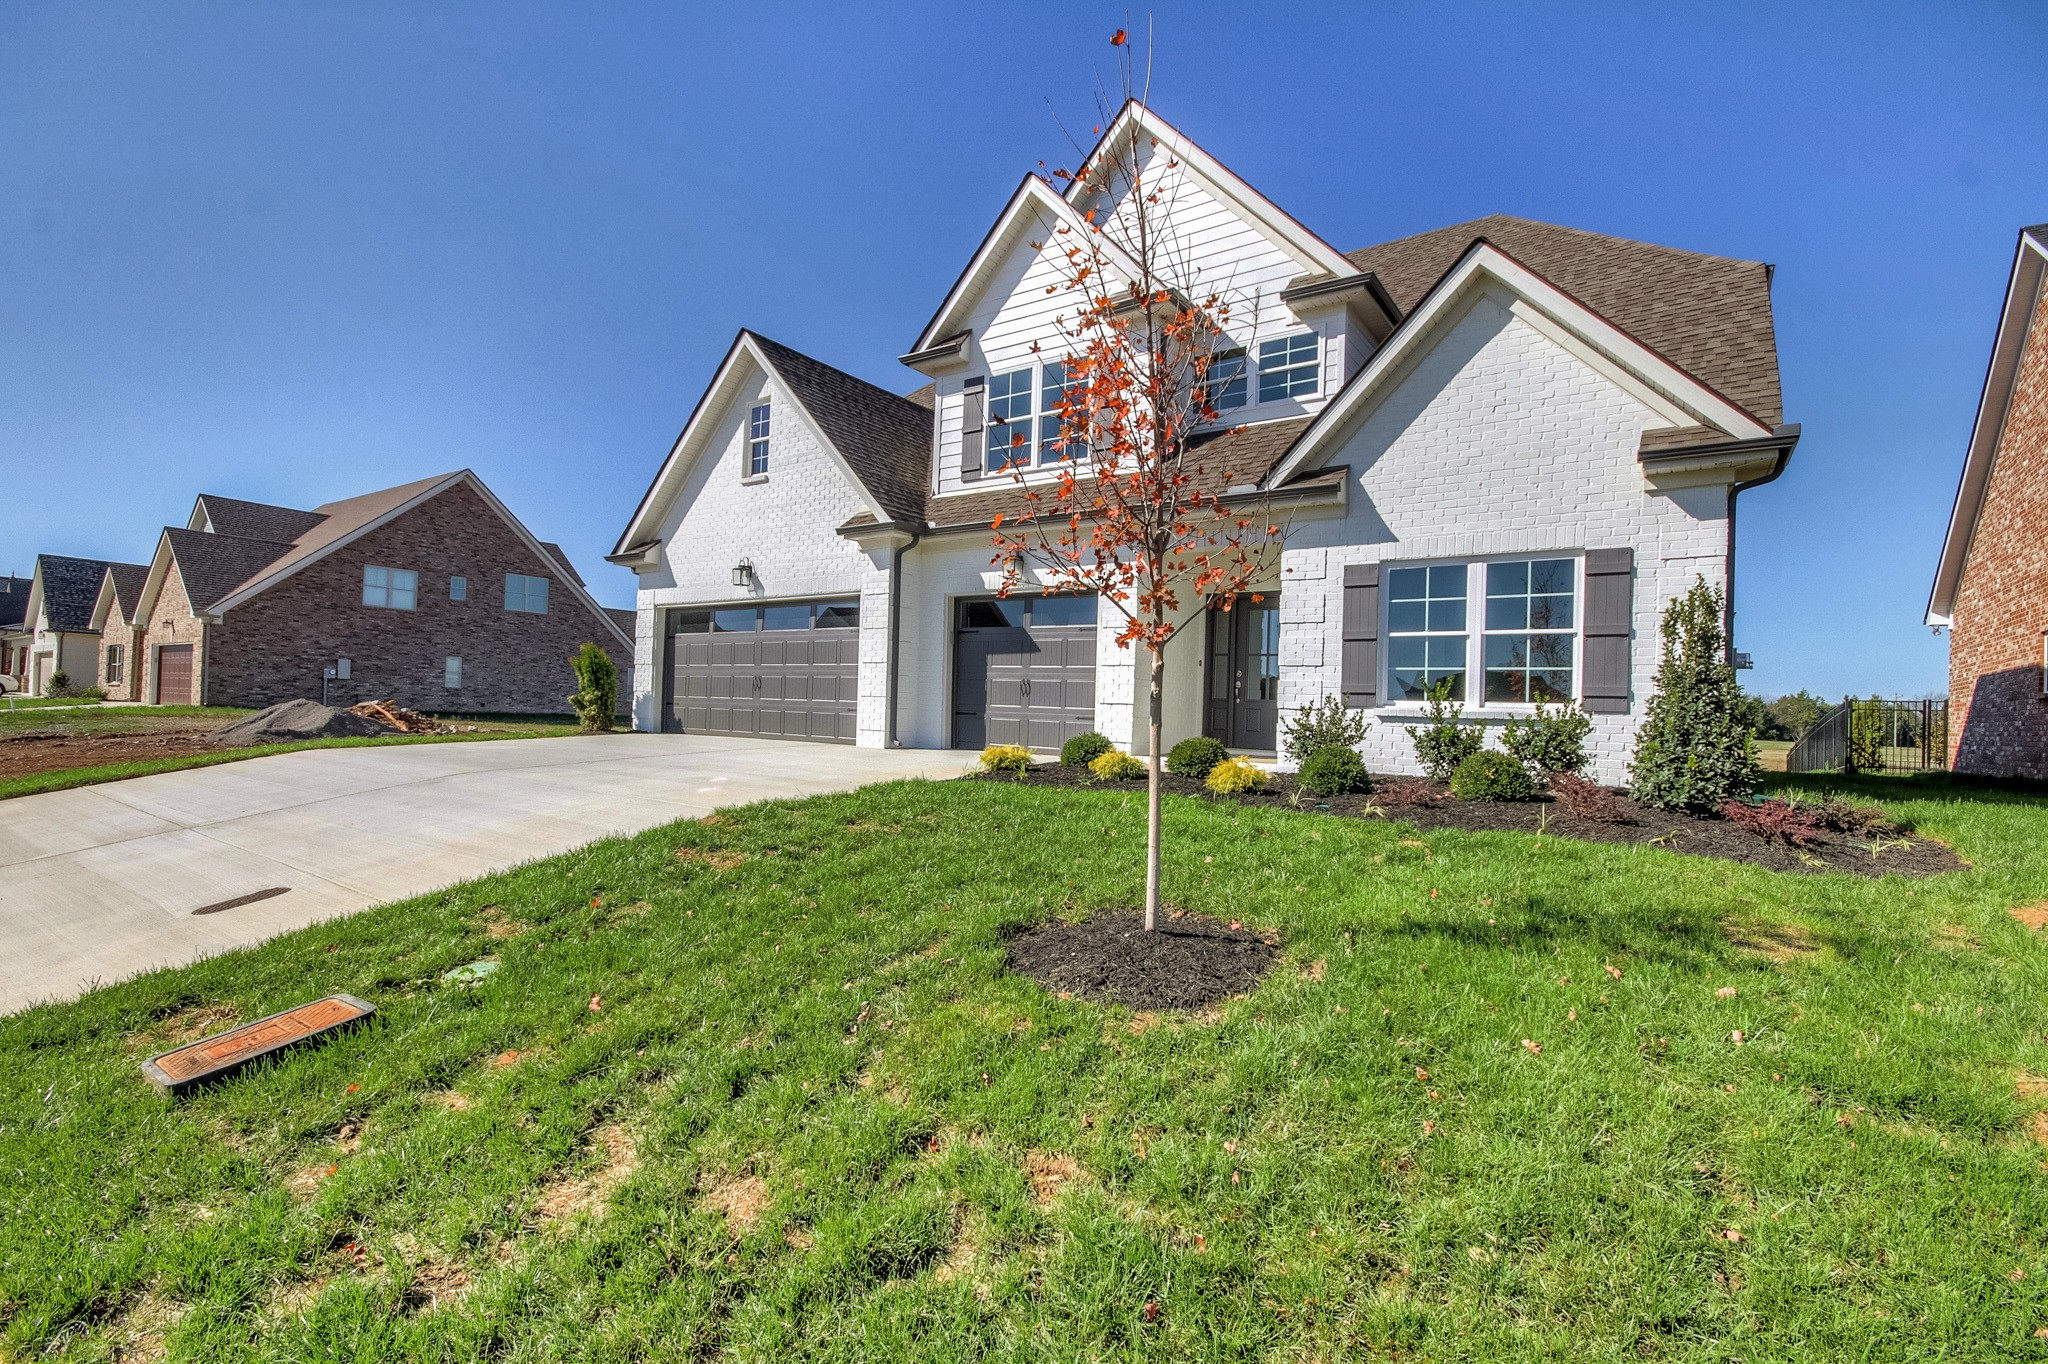 3923 Runyan Cove (Lot 20), Murfreesboro, TN 37127 - Murfreesboro, TN real estate listing